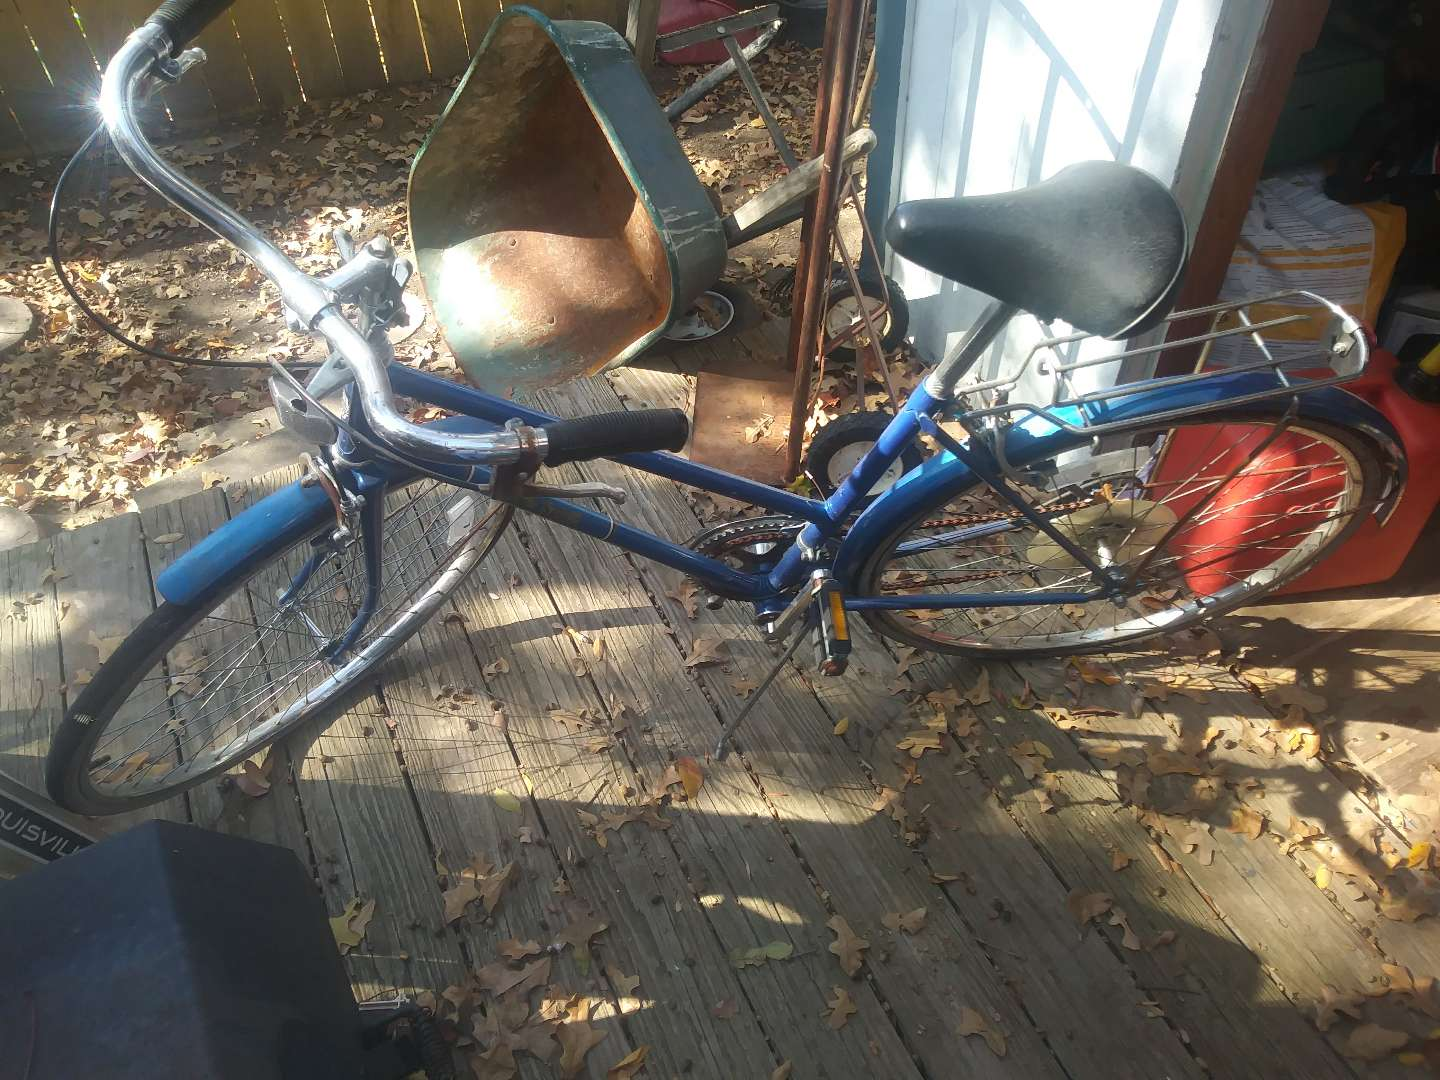 Photo Dutch bicycle is made back in the 80s good 10-speed for anyone who wants to do a little work on it. Get it while you can it won't last long.